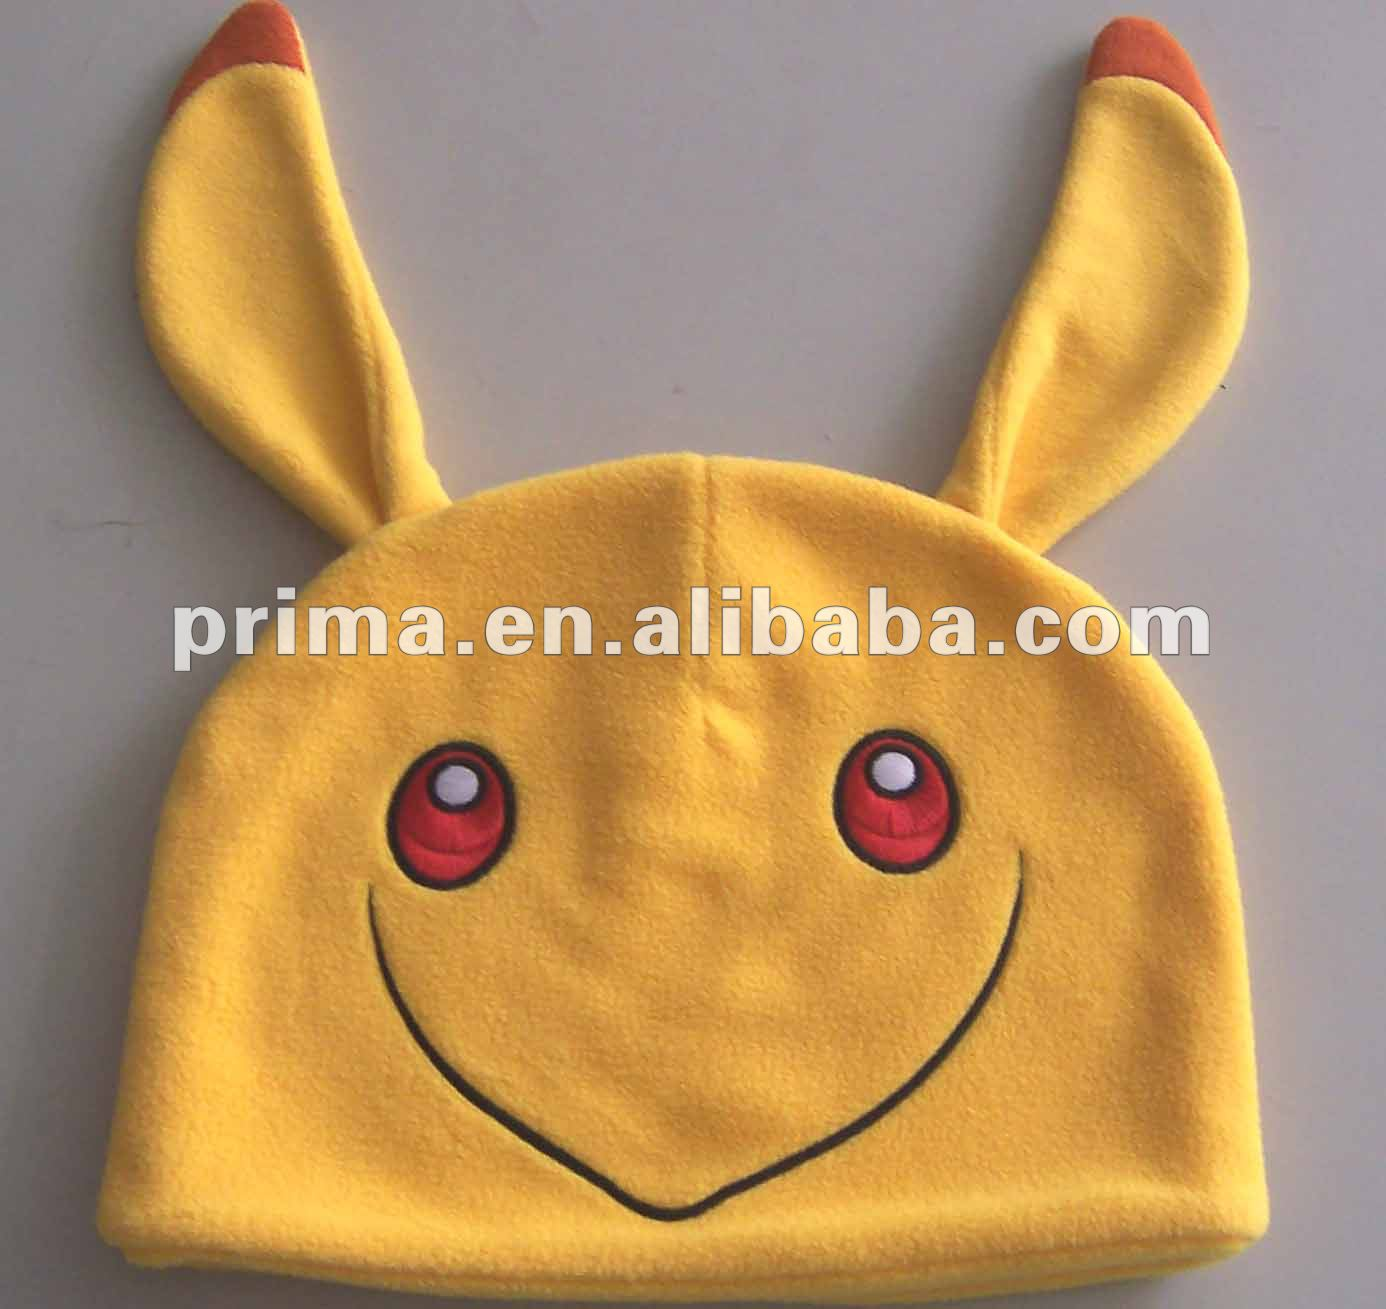 customized cute style polar fleece animal winter cap hat with funny ear